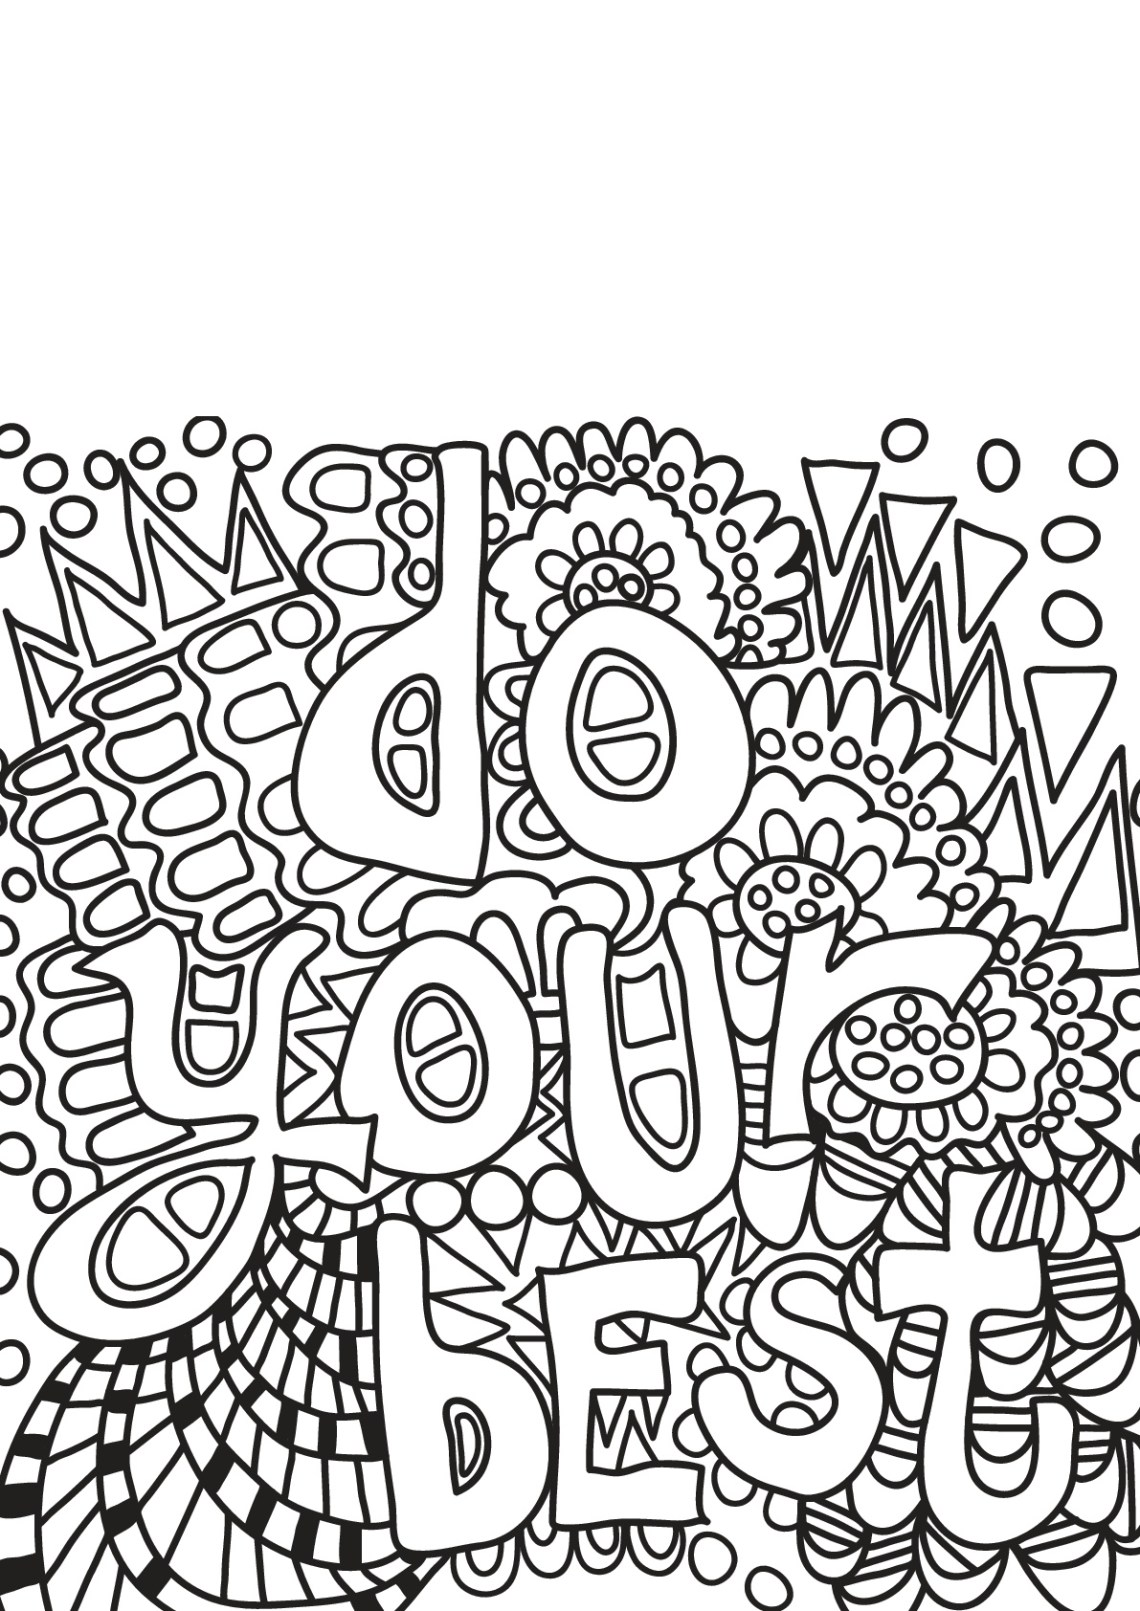 Free book quote 17 - Quotes Adult Coloring Pages | free printable colouring pages quotes